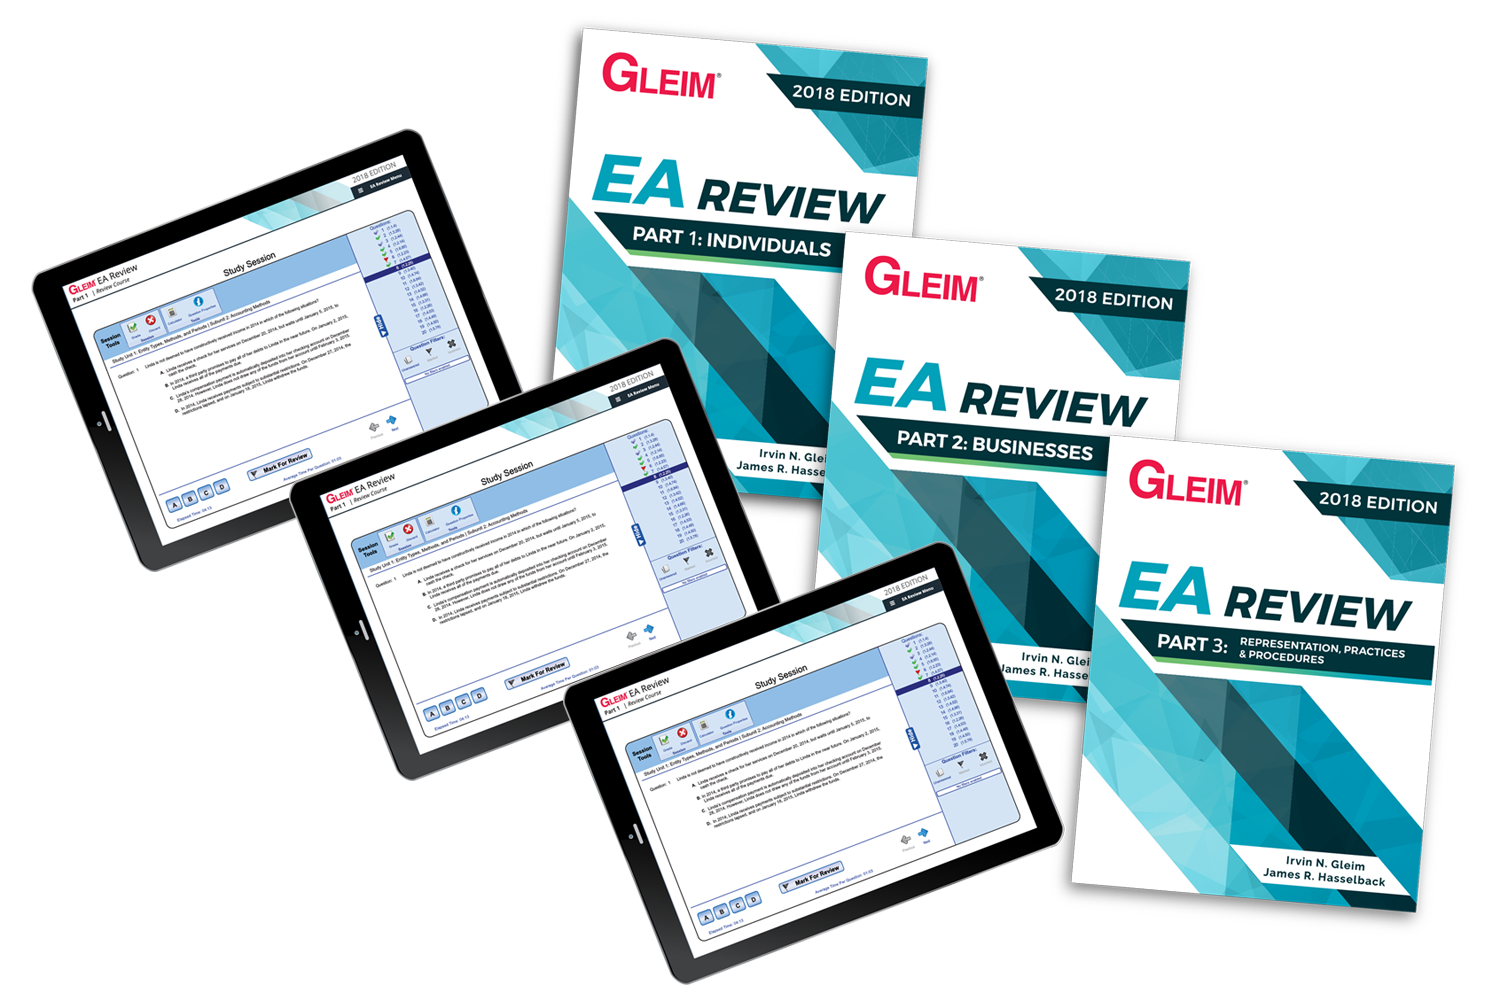 Gleim EA Review Books & Test Prep Online – Parts 1, 2 & 3 (2018) - #OAB3865S